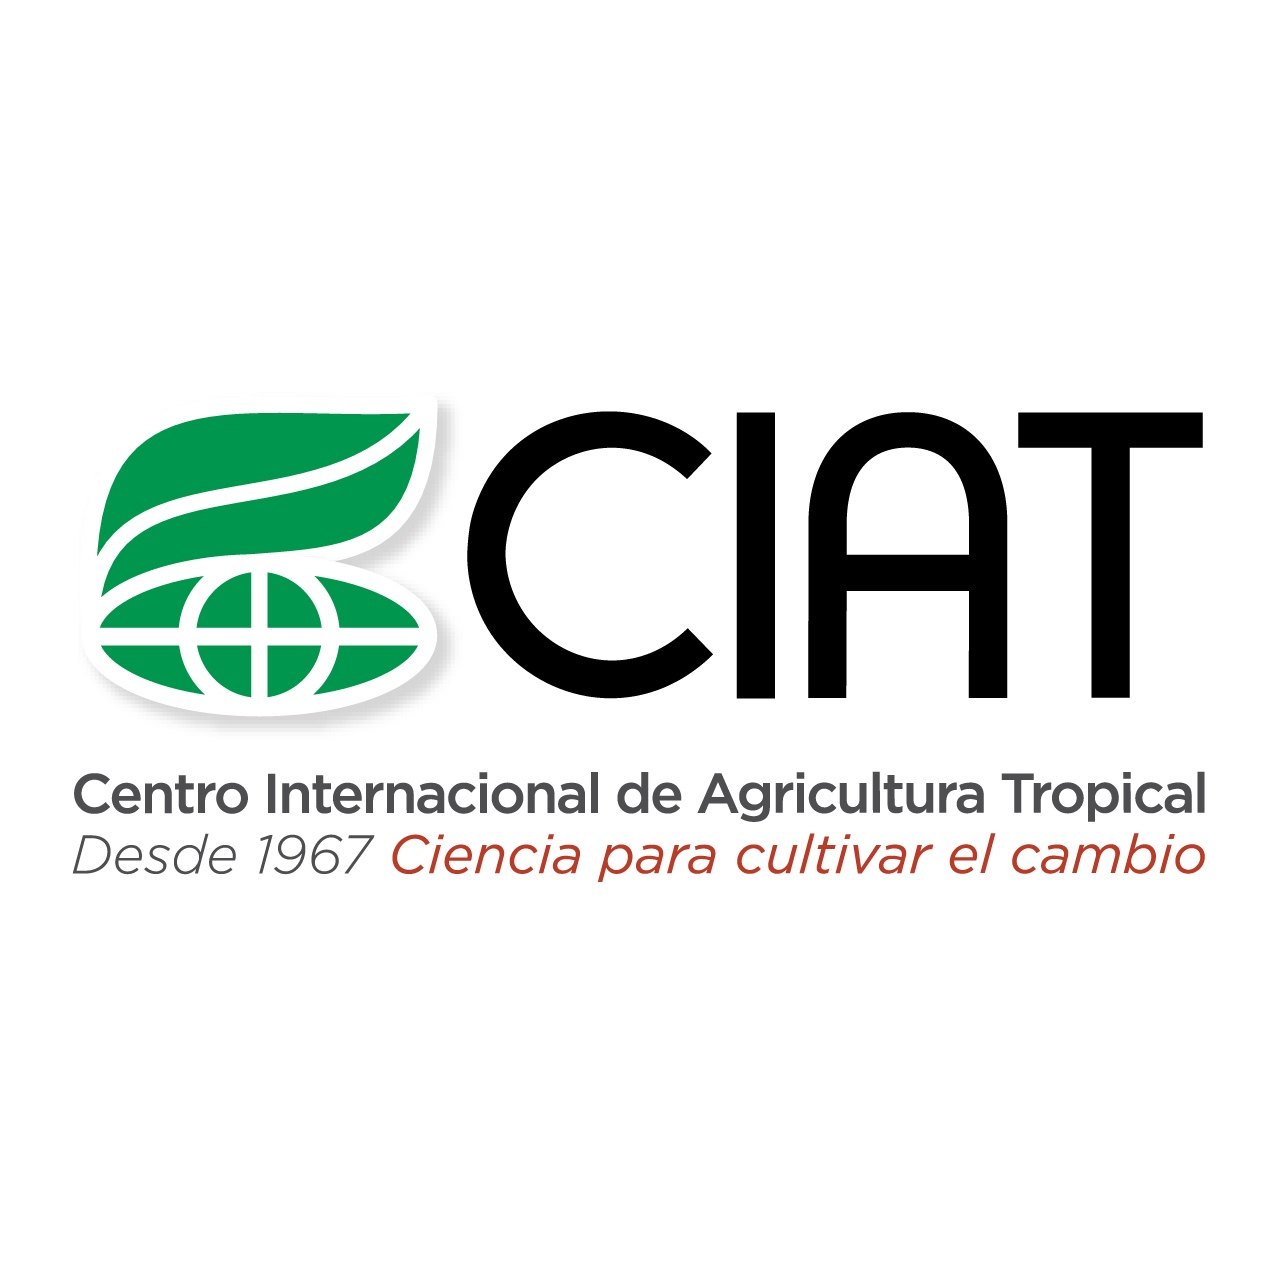 Statistician International Center for Tropical Agriculture  Garth Tarr